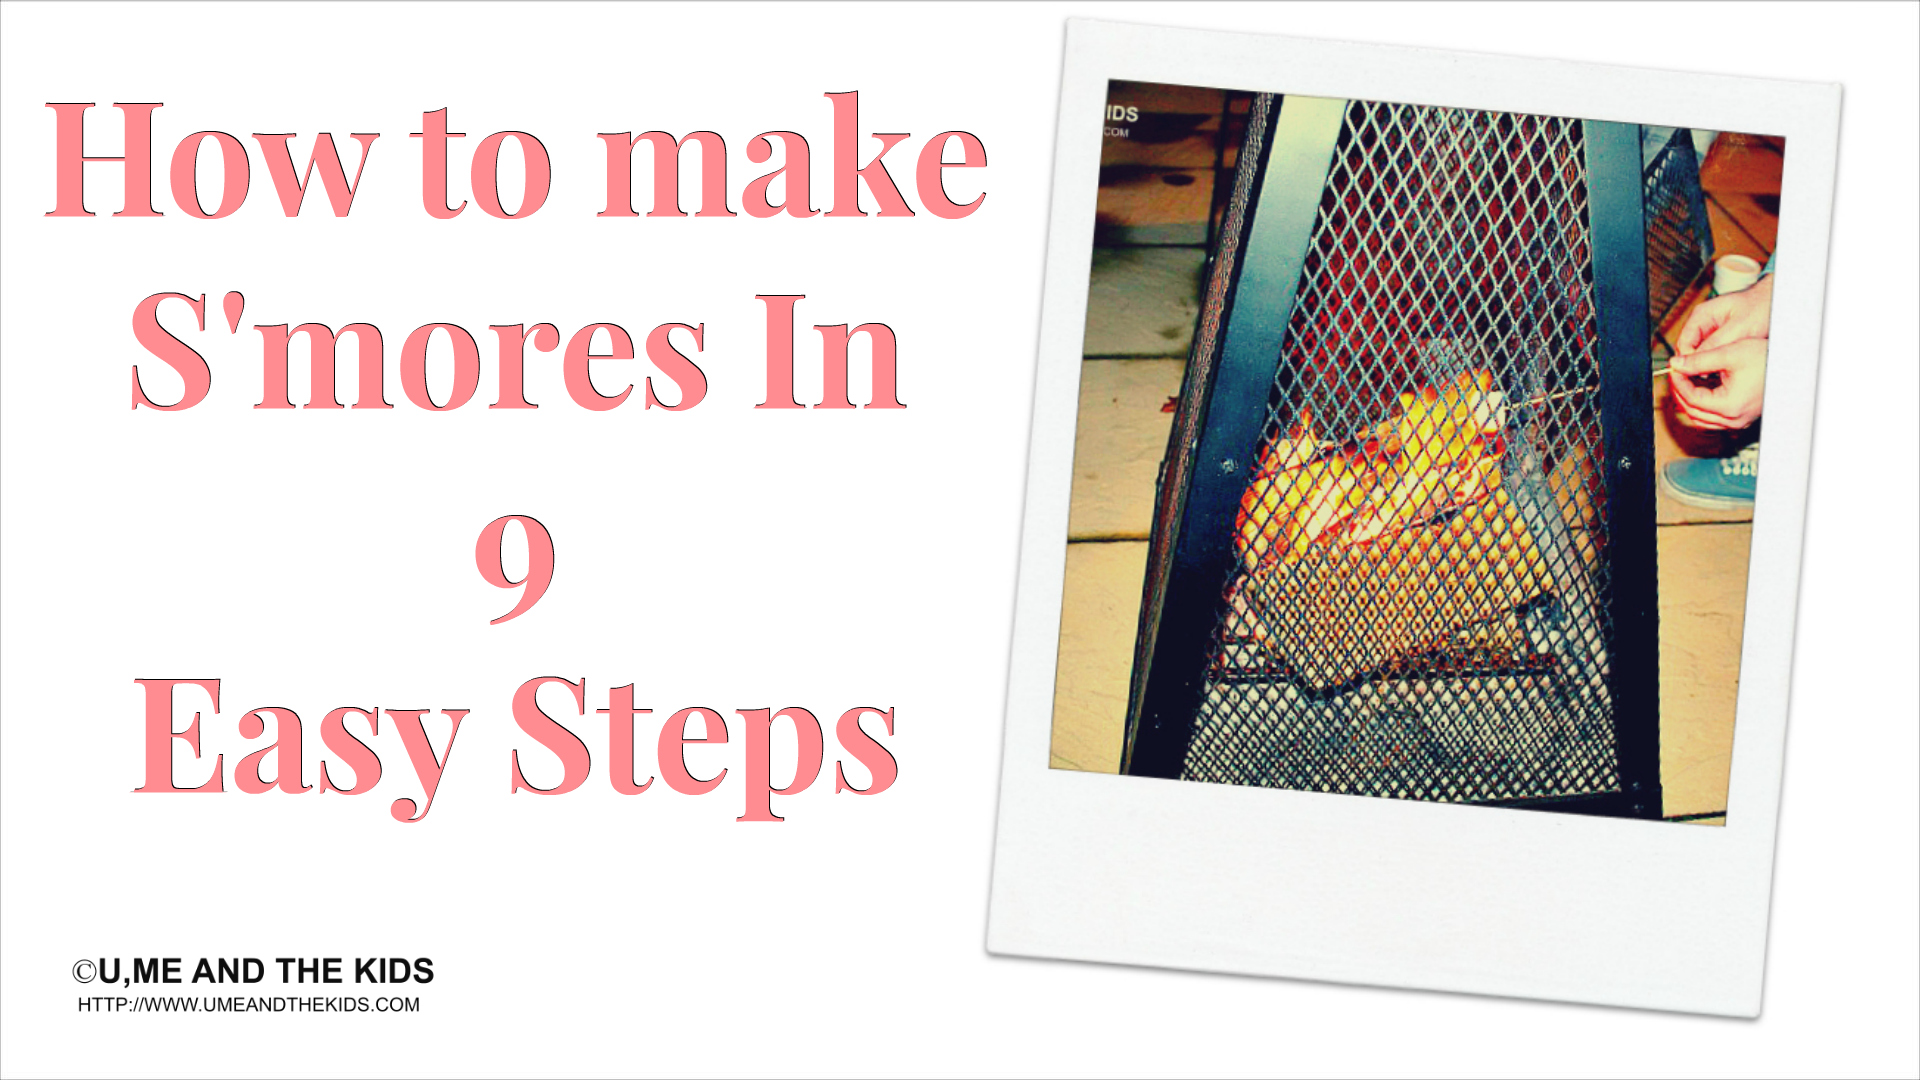 how to make s'mores in 9 easy steps